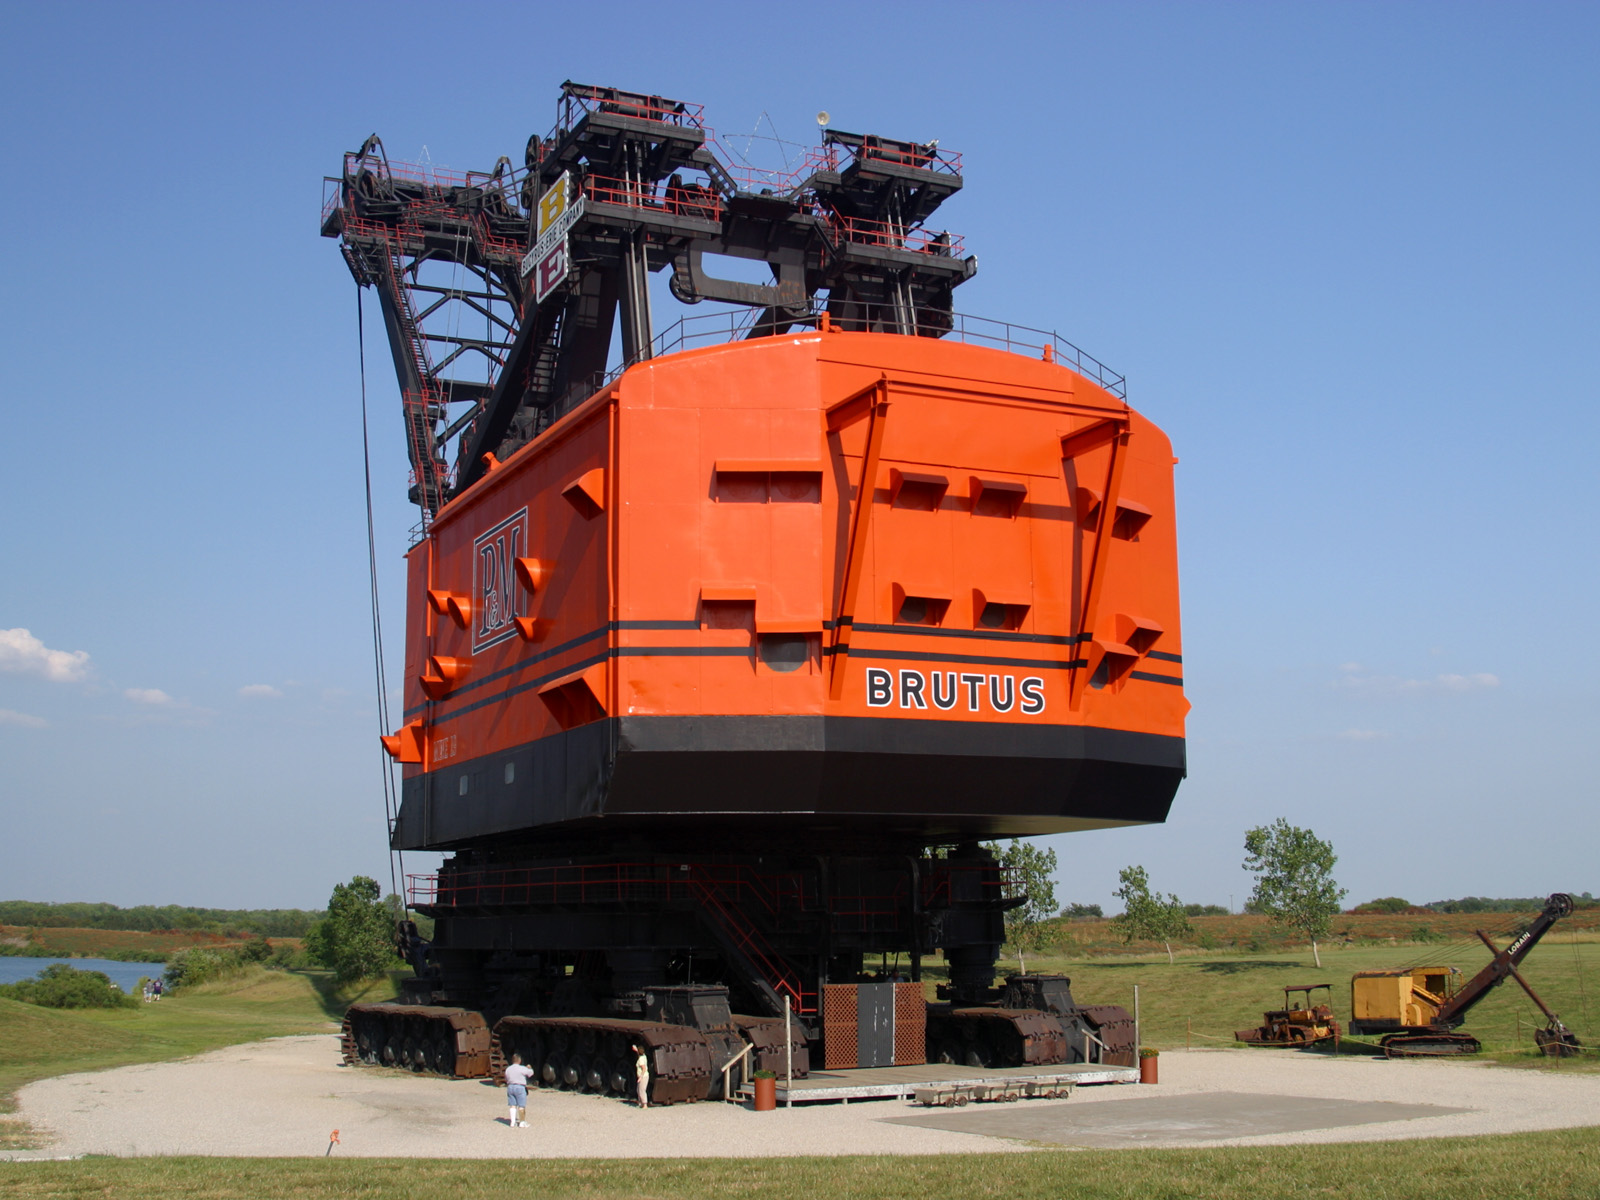 Think, that Coal strip mine hydraulic shovel matchless